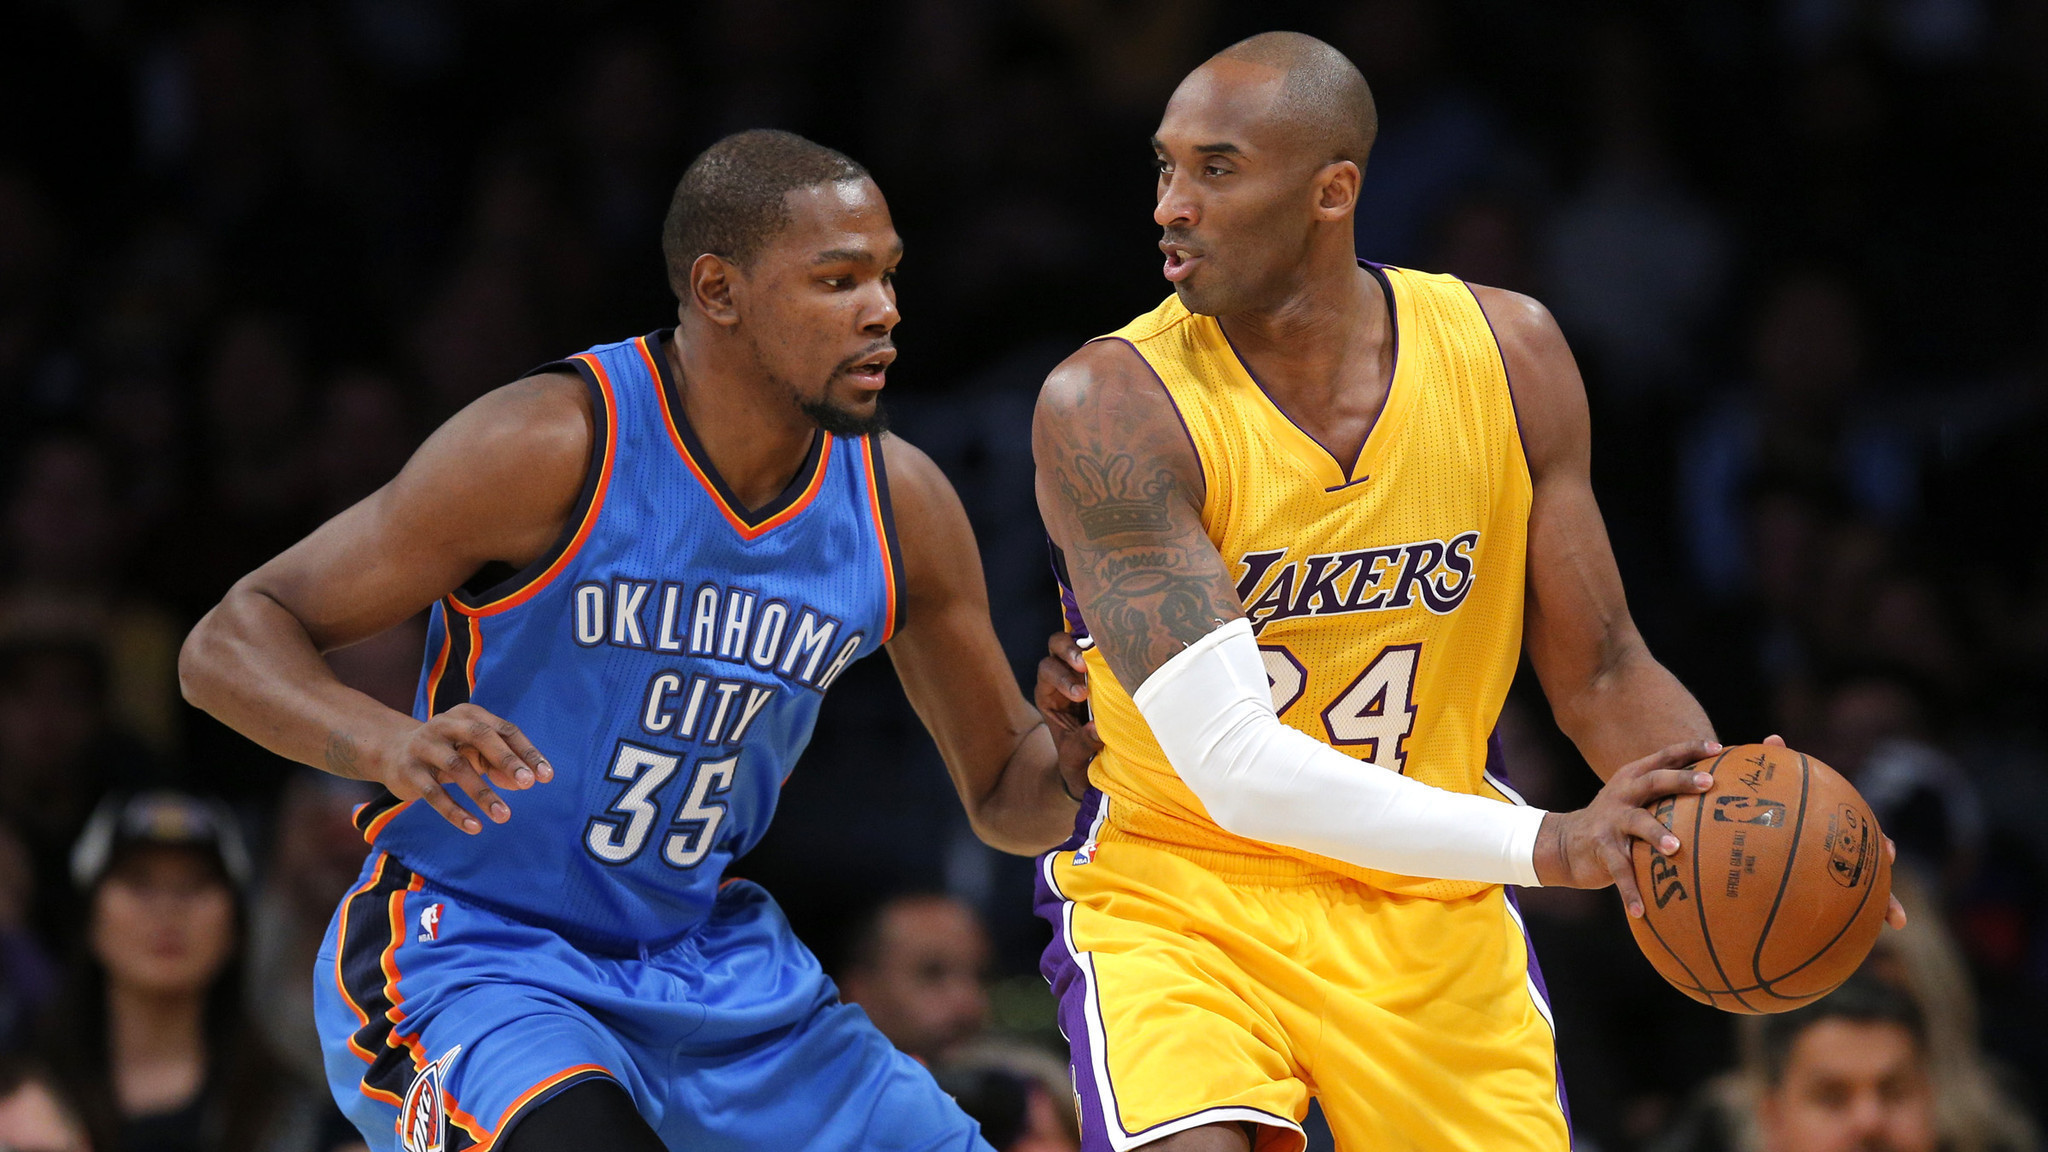 Lakers' Kobe Bryant wants to play but injury could prevent it for a while –  LA Times